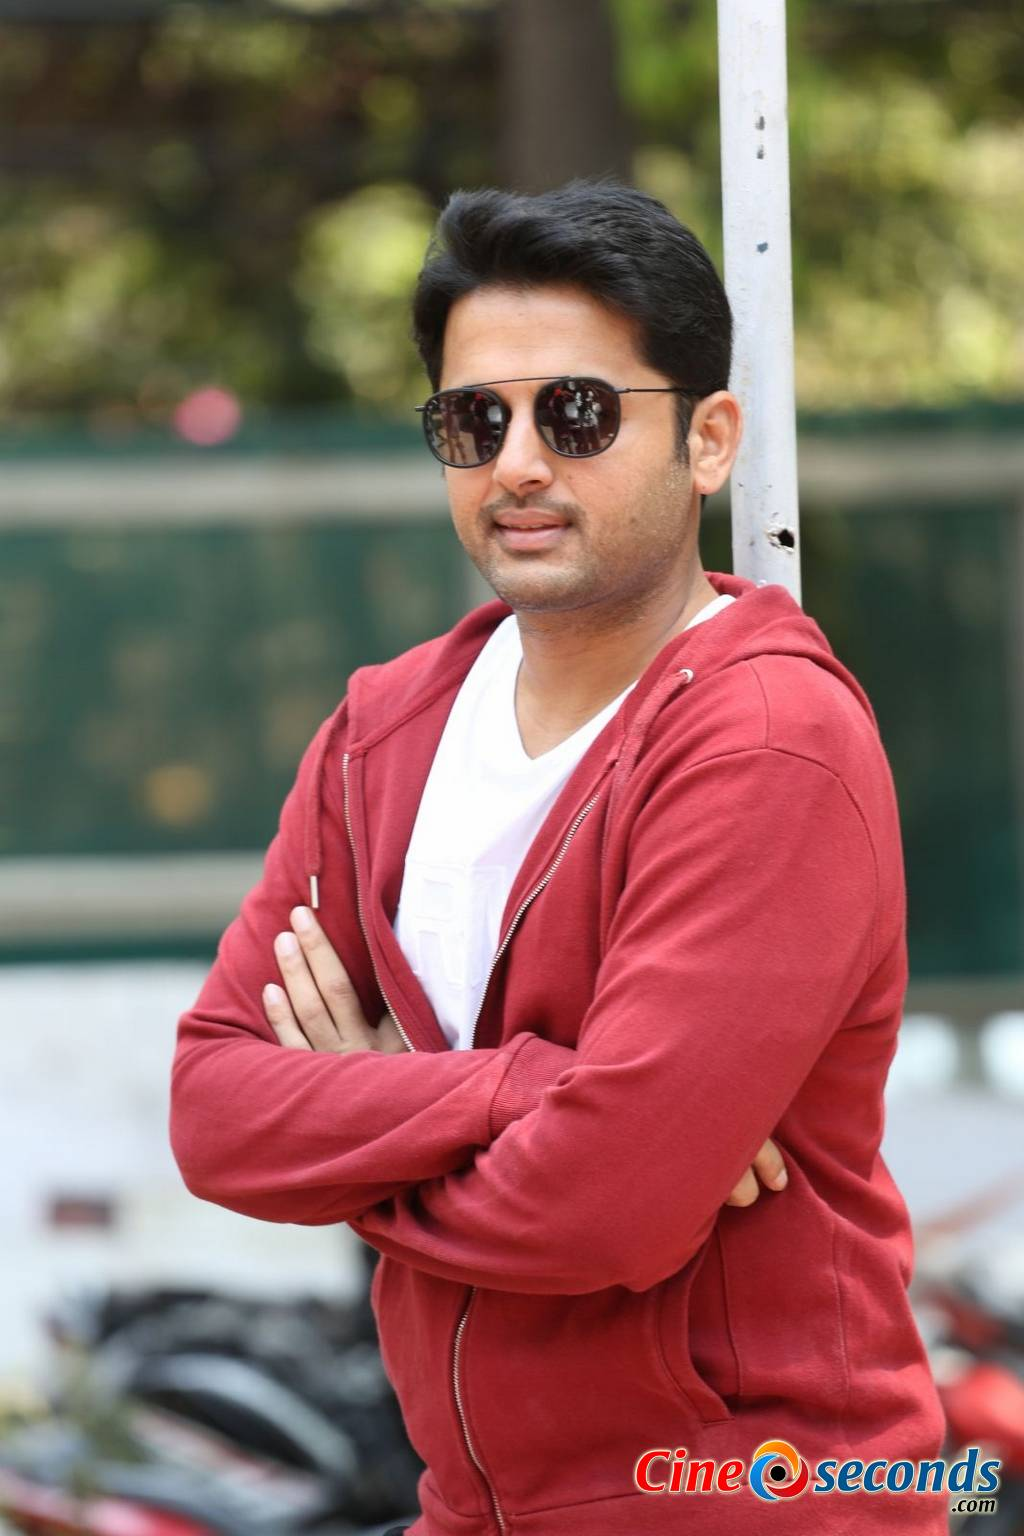 Chal-Mohan-Ranga-Actor-Nithiin-Interview-Stills-(22)_104430.jpg